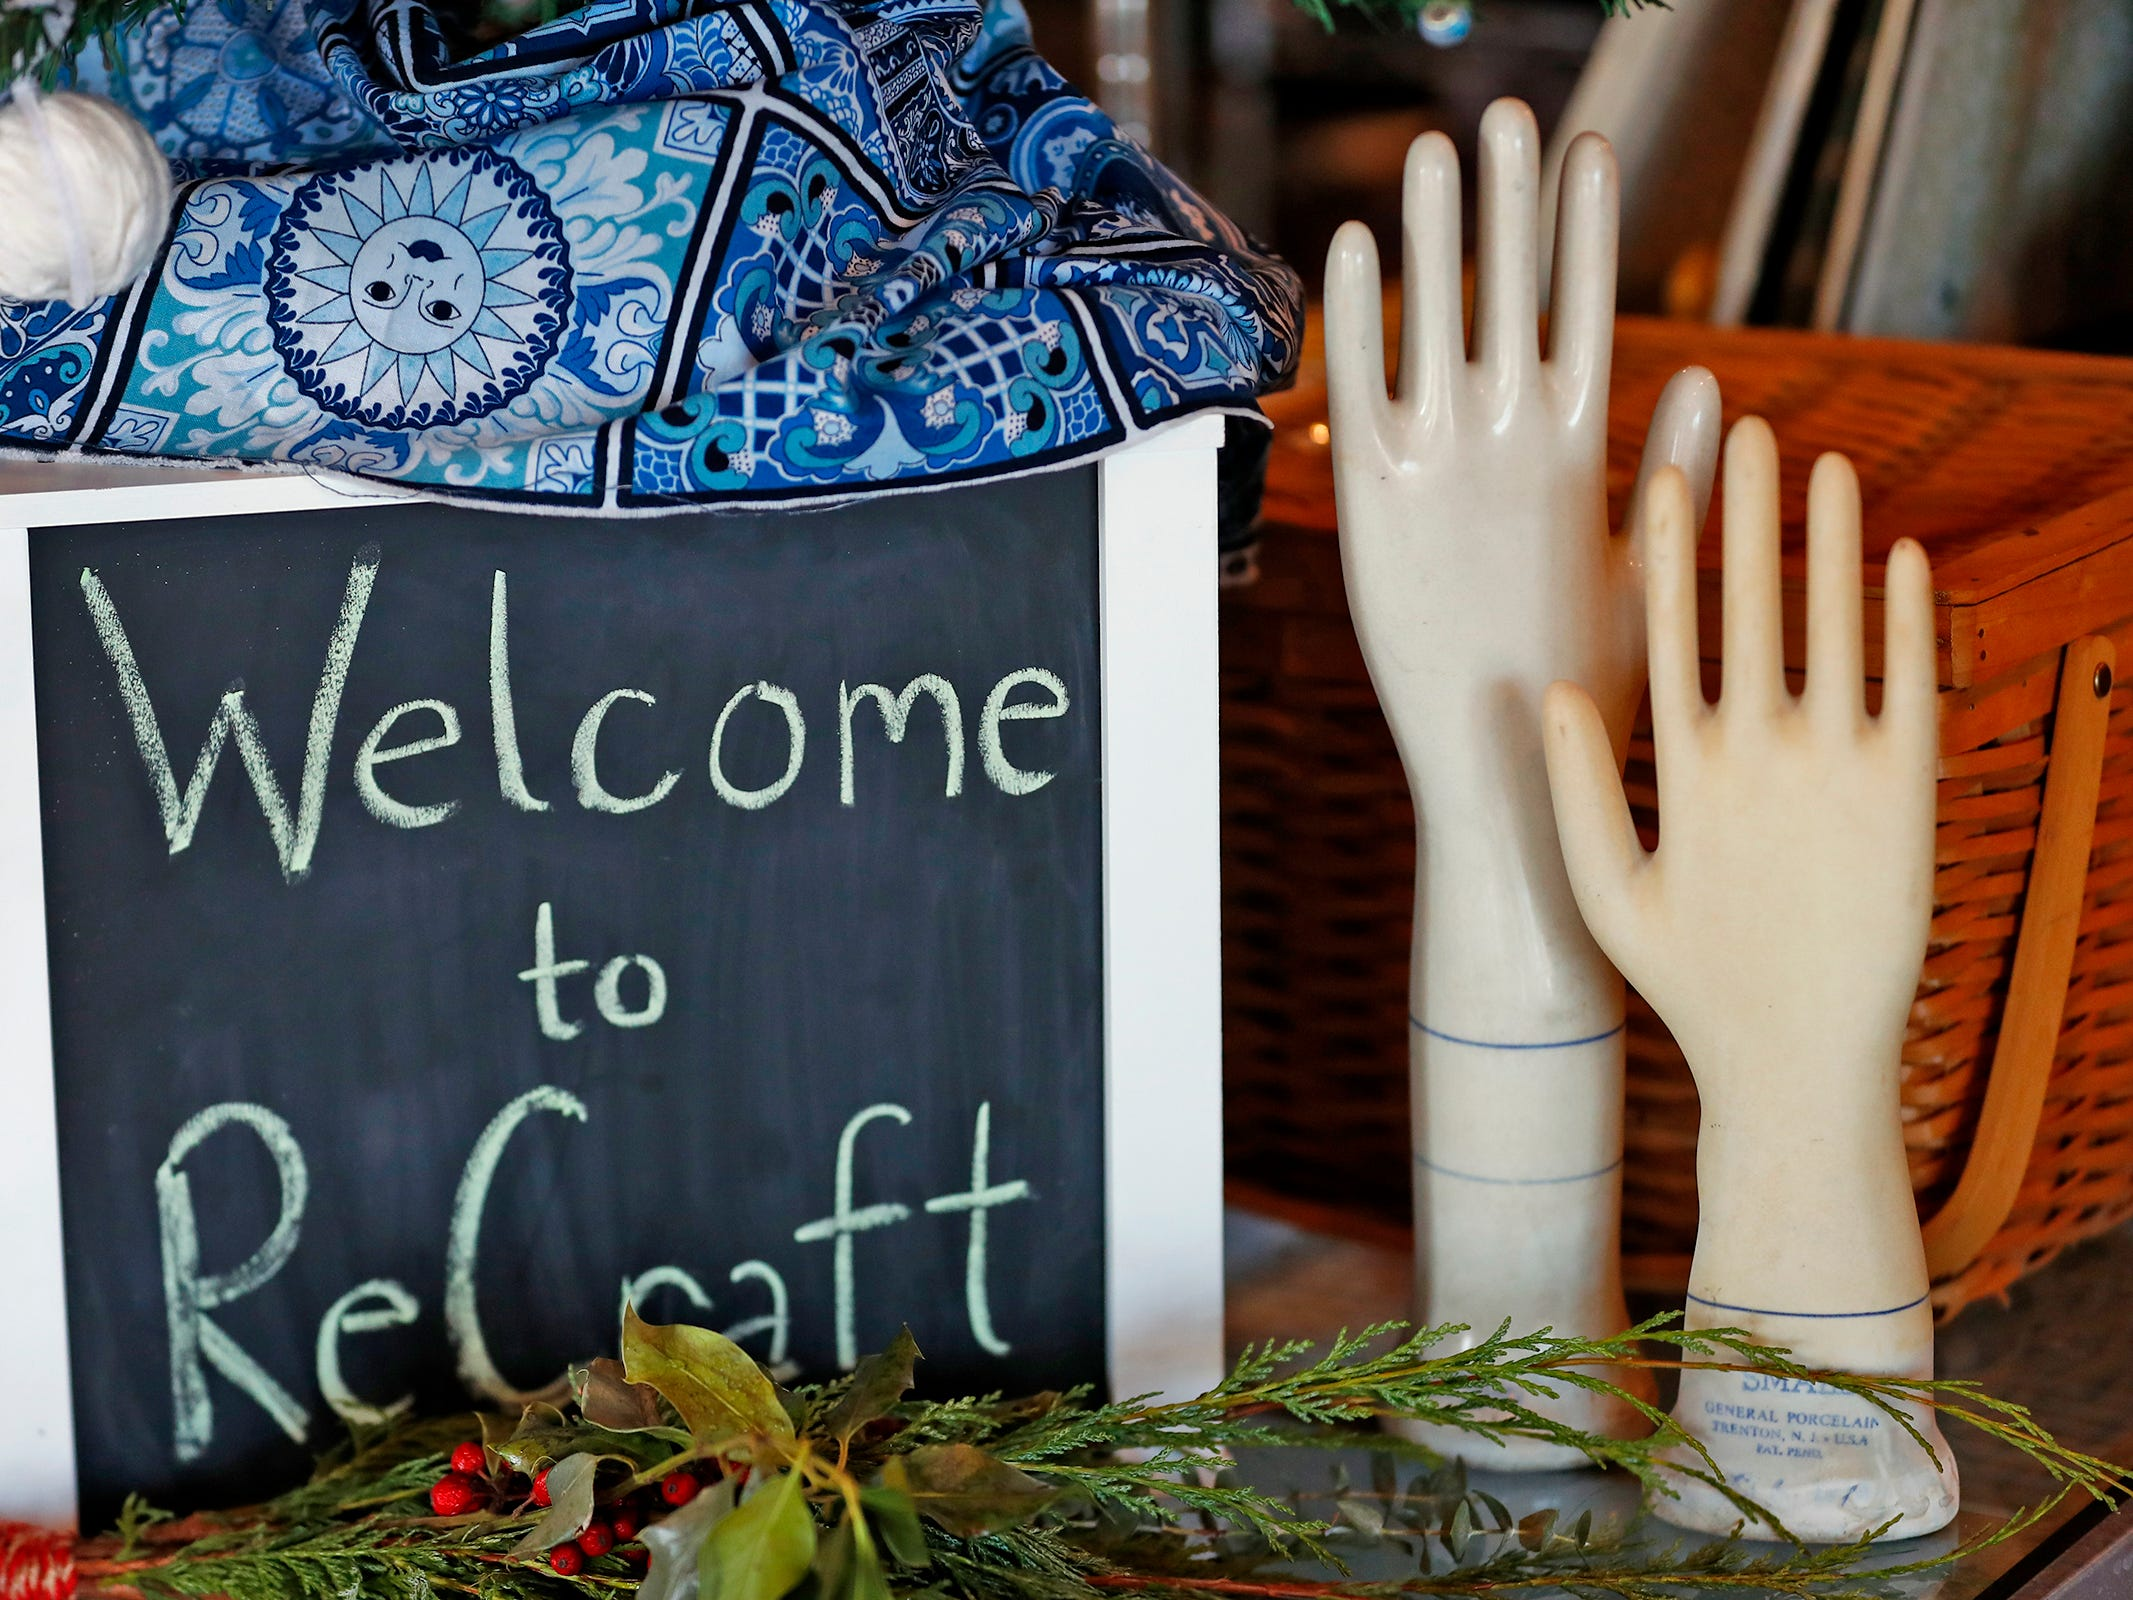 Mannequin hands are seen for sale at ReCraft, Tuesday, Dec. 11, 2018.  Many of the store's items are donated or ready for re-use. ReCraft was born out of Bethany Daugherty's love of crafting and her interest in environmental activism.  At the secondhand craft and hobby store, Daugherty also teaches workshops.  Sustainability and environmentalism are the focus of the store.